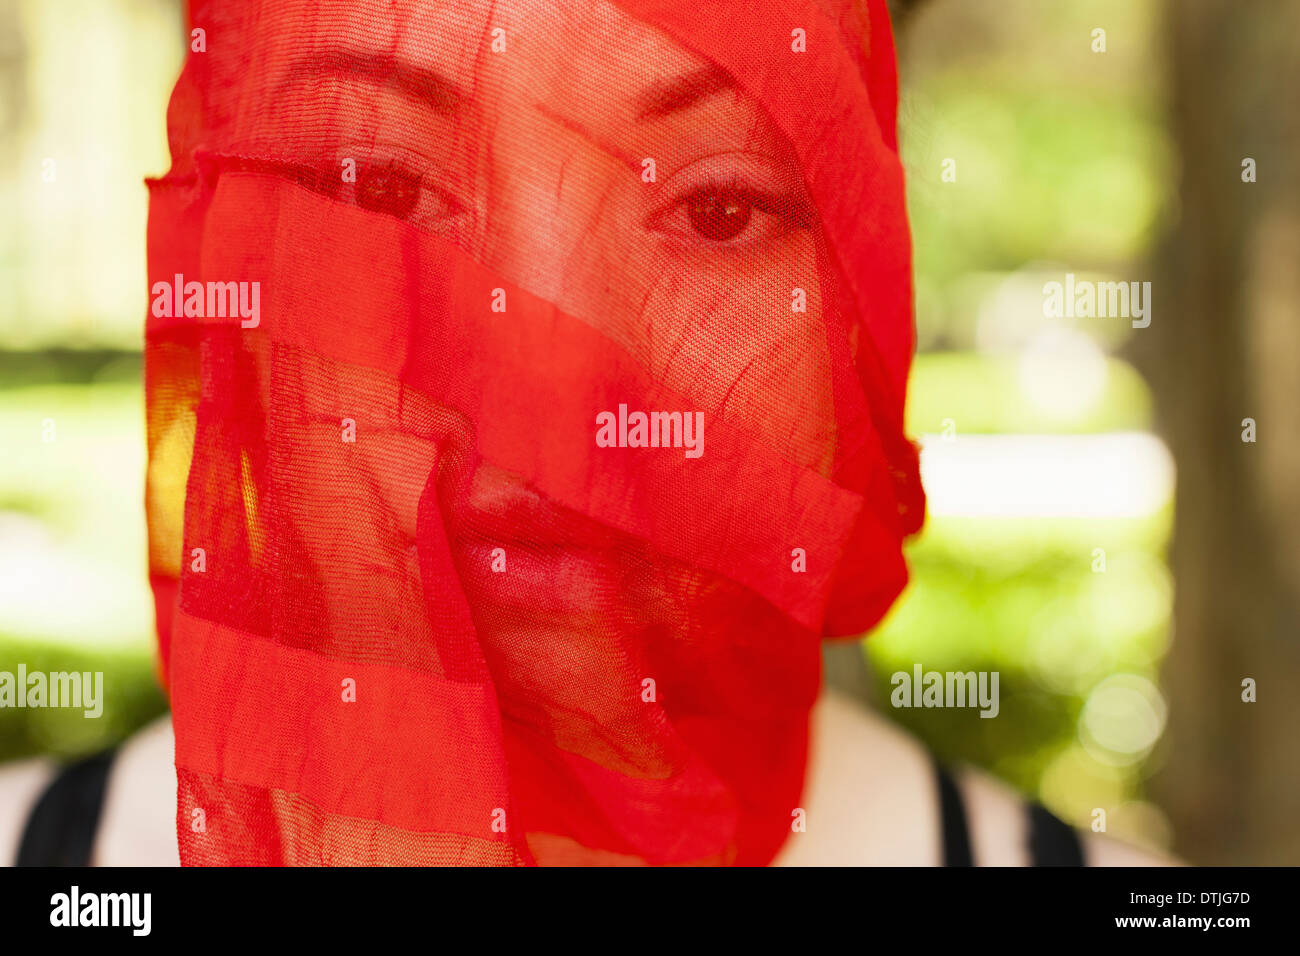 A young woman with a red seethrough sheer veil across her face Pennsylvania USA - Stock Image